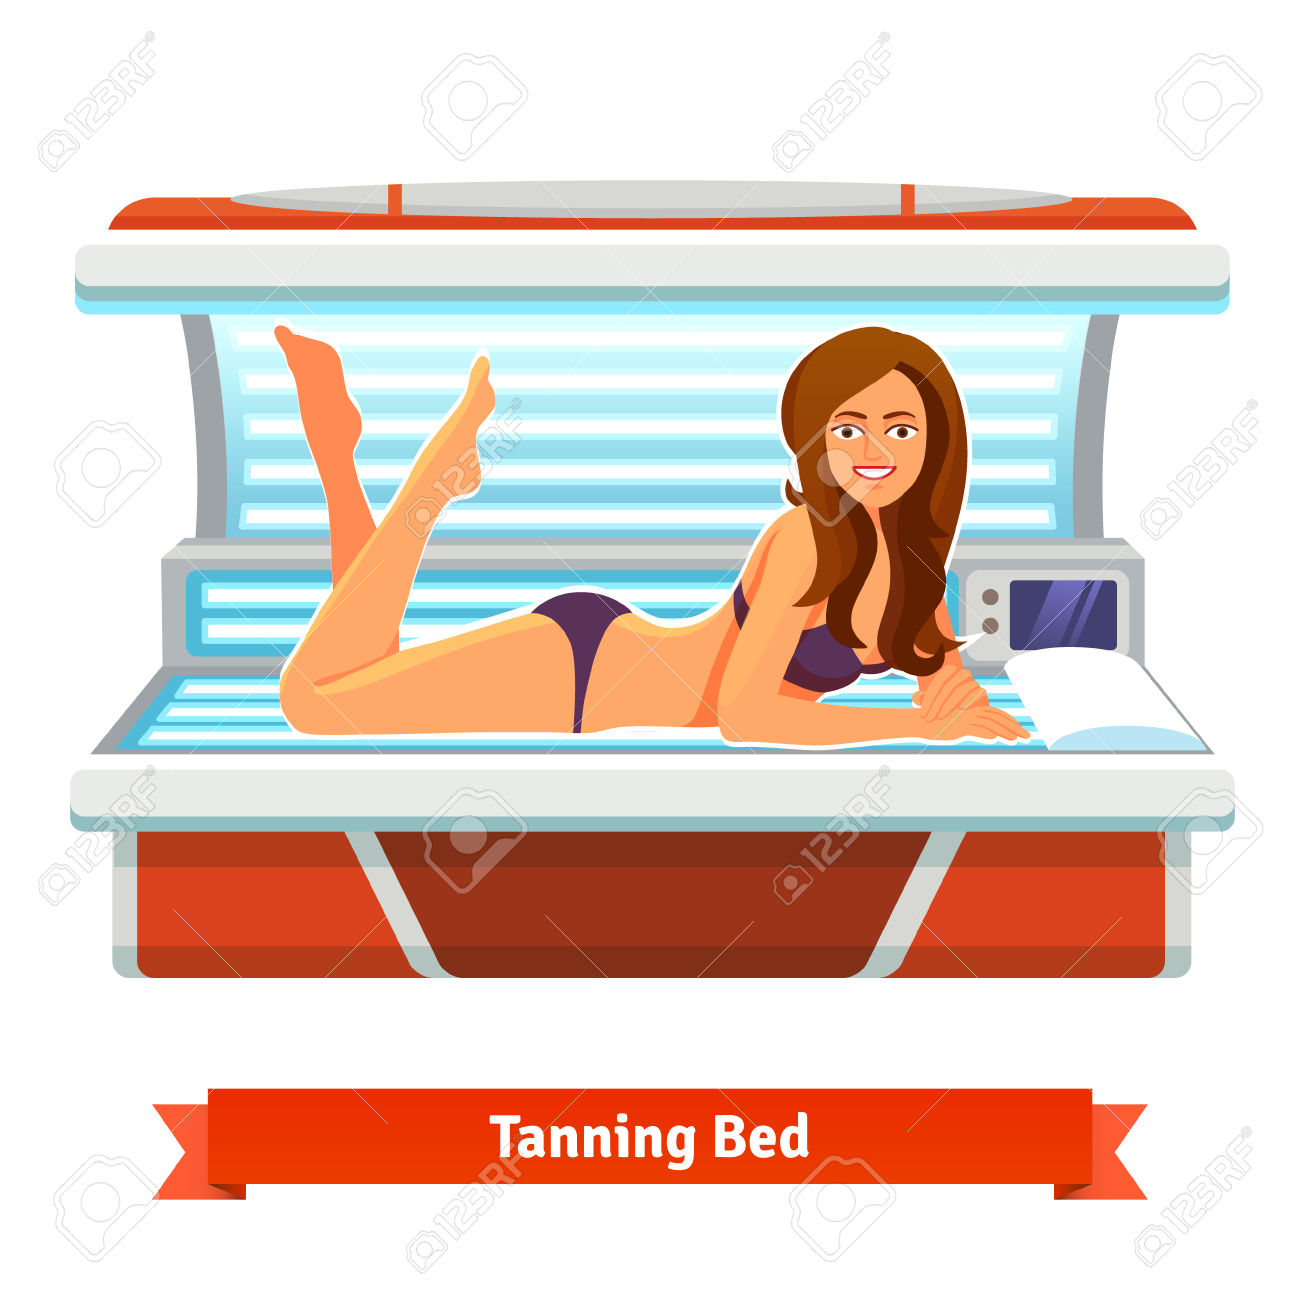 Young Pretty Woman In Tanning Bed. Artificial Tan. Flat Style.